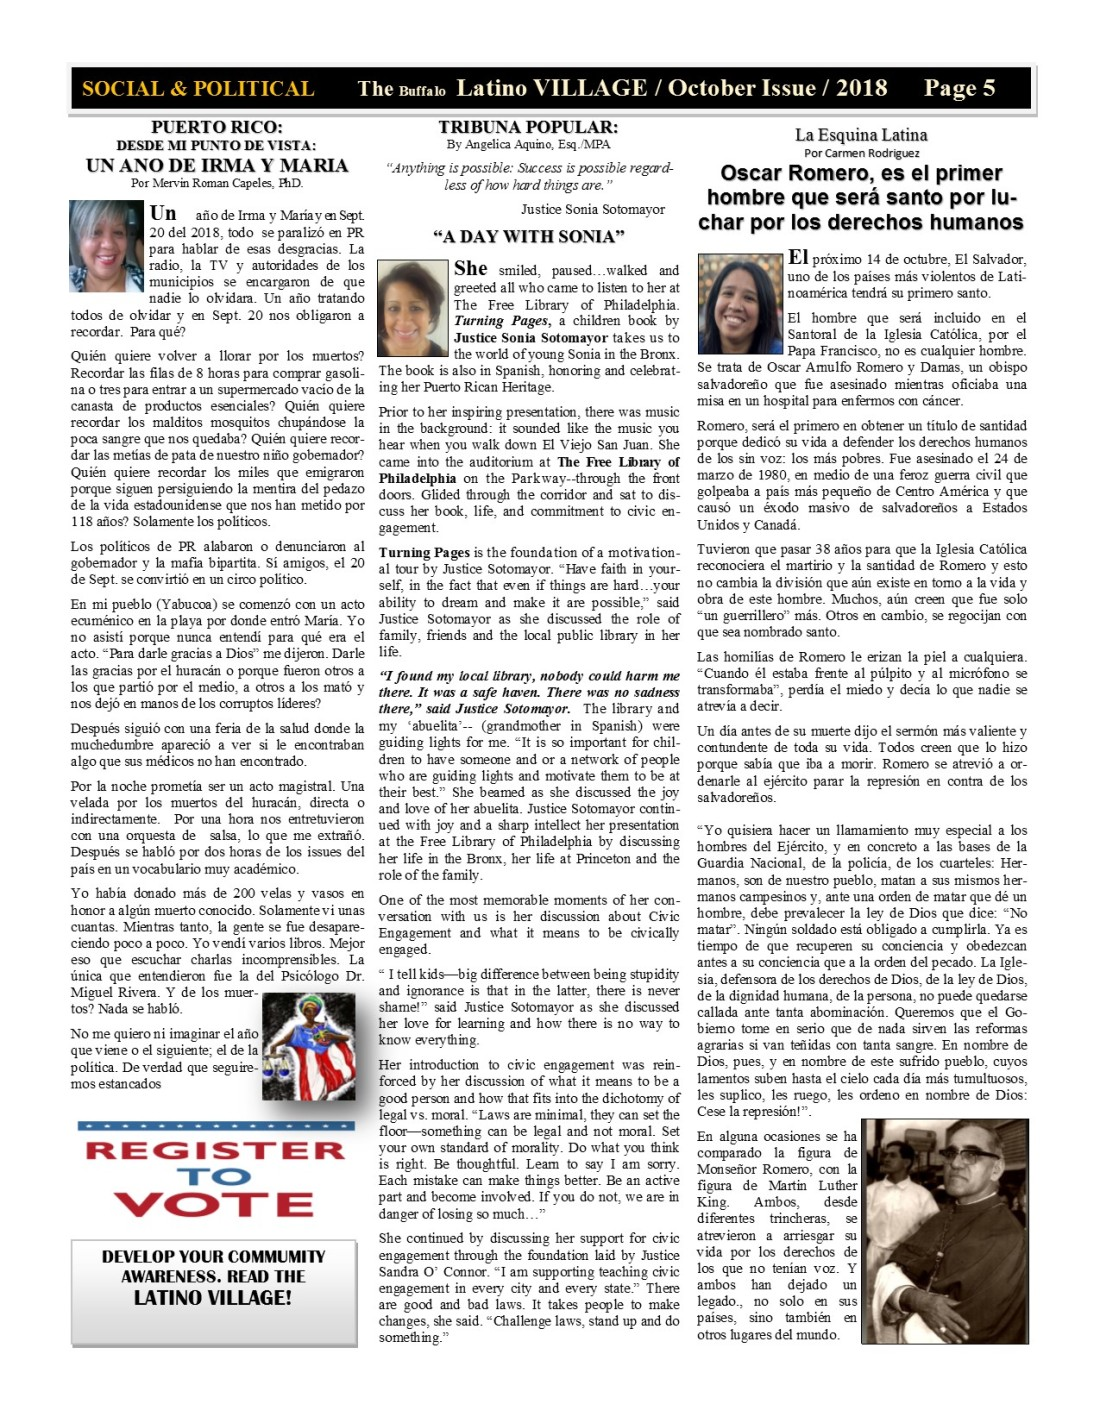 Page 5 Latino Village Newslette October Issue 2018 No. 12